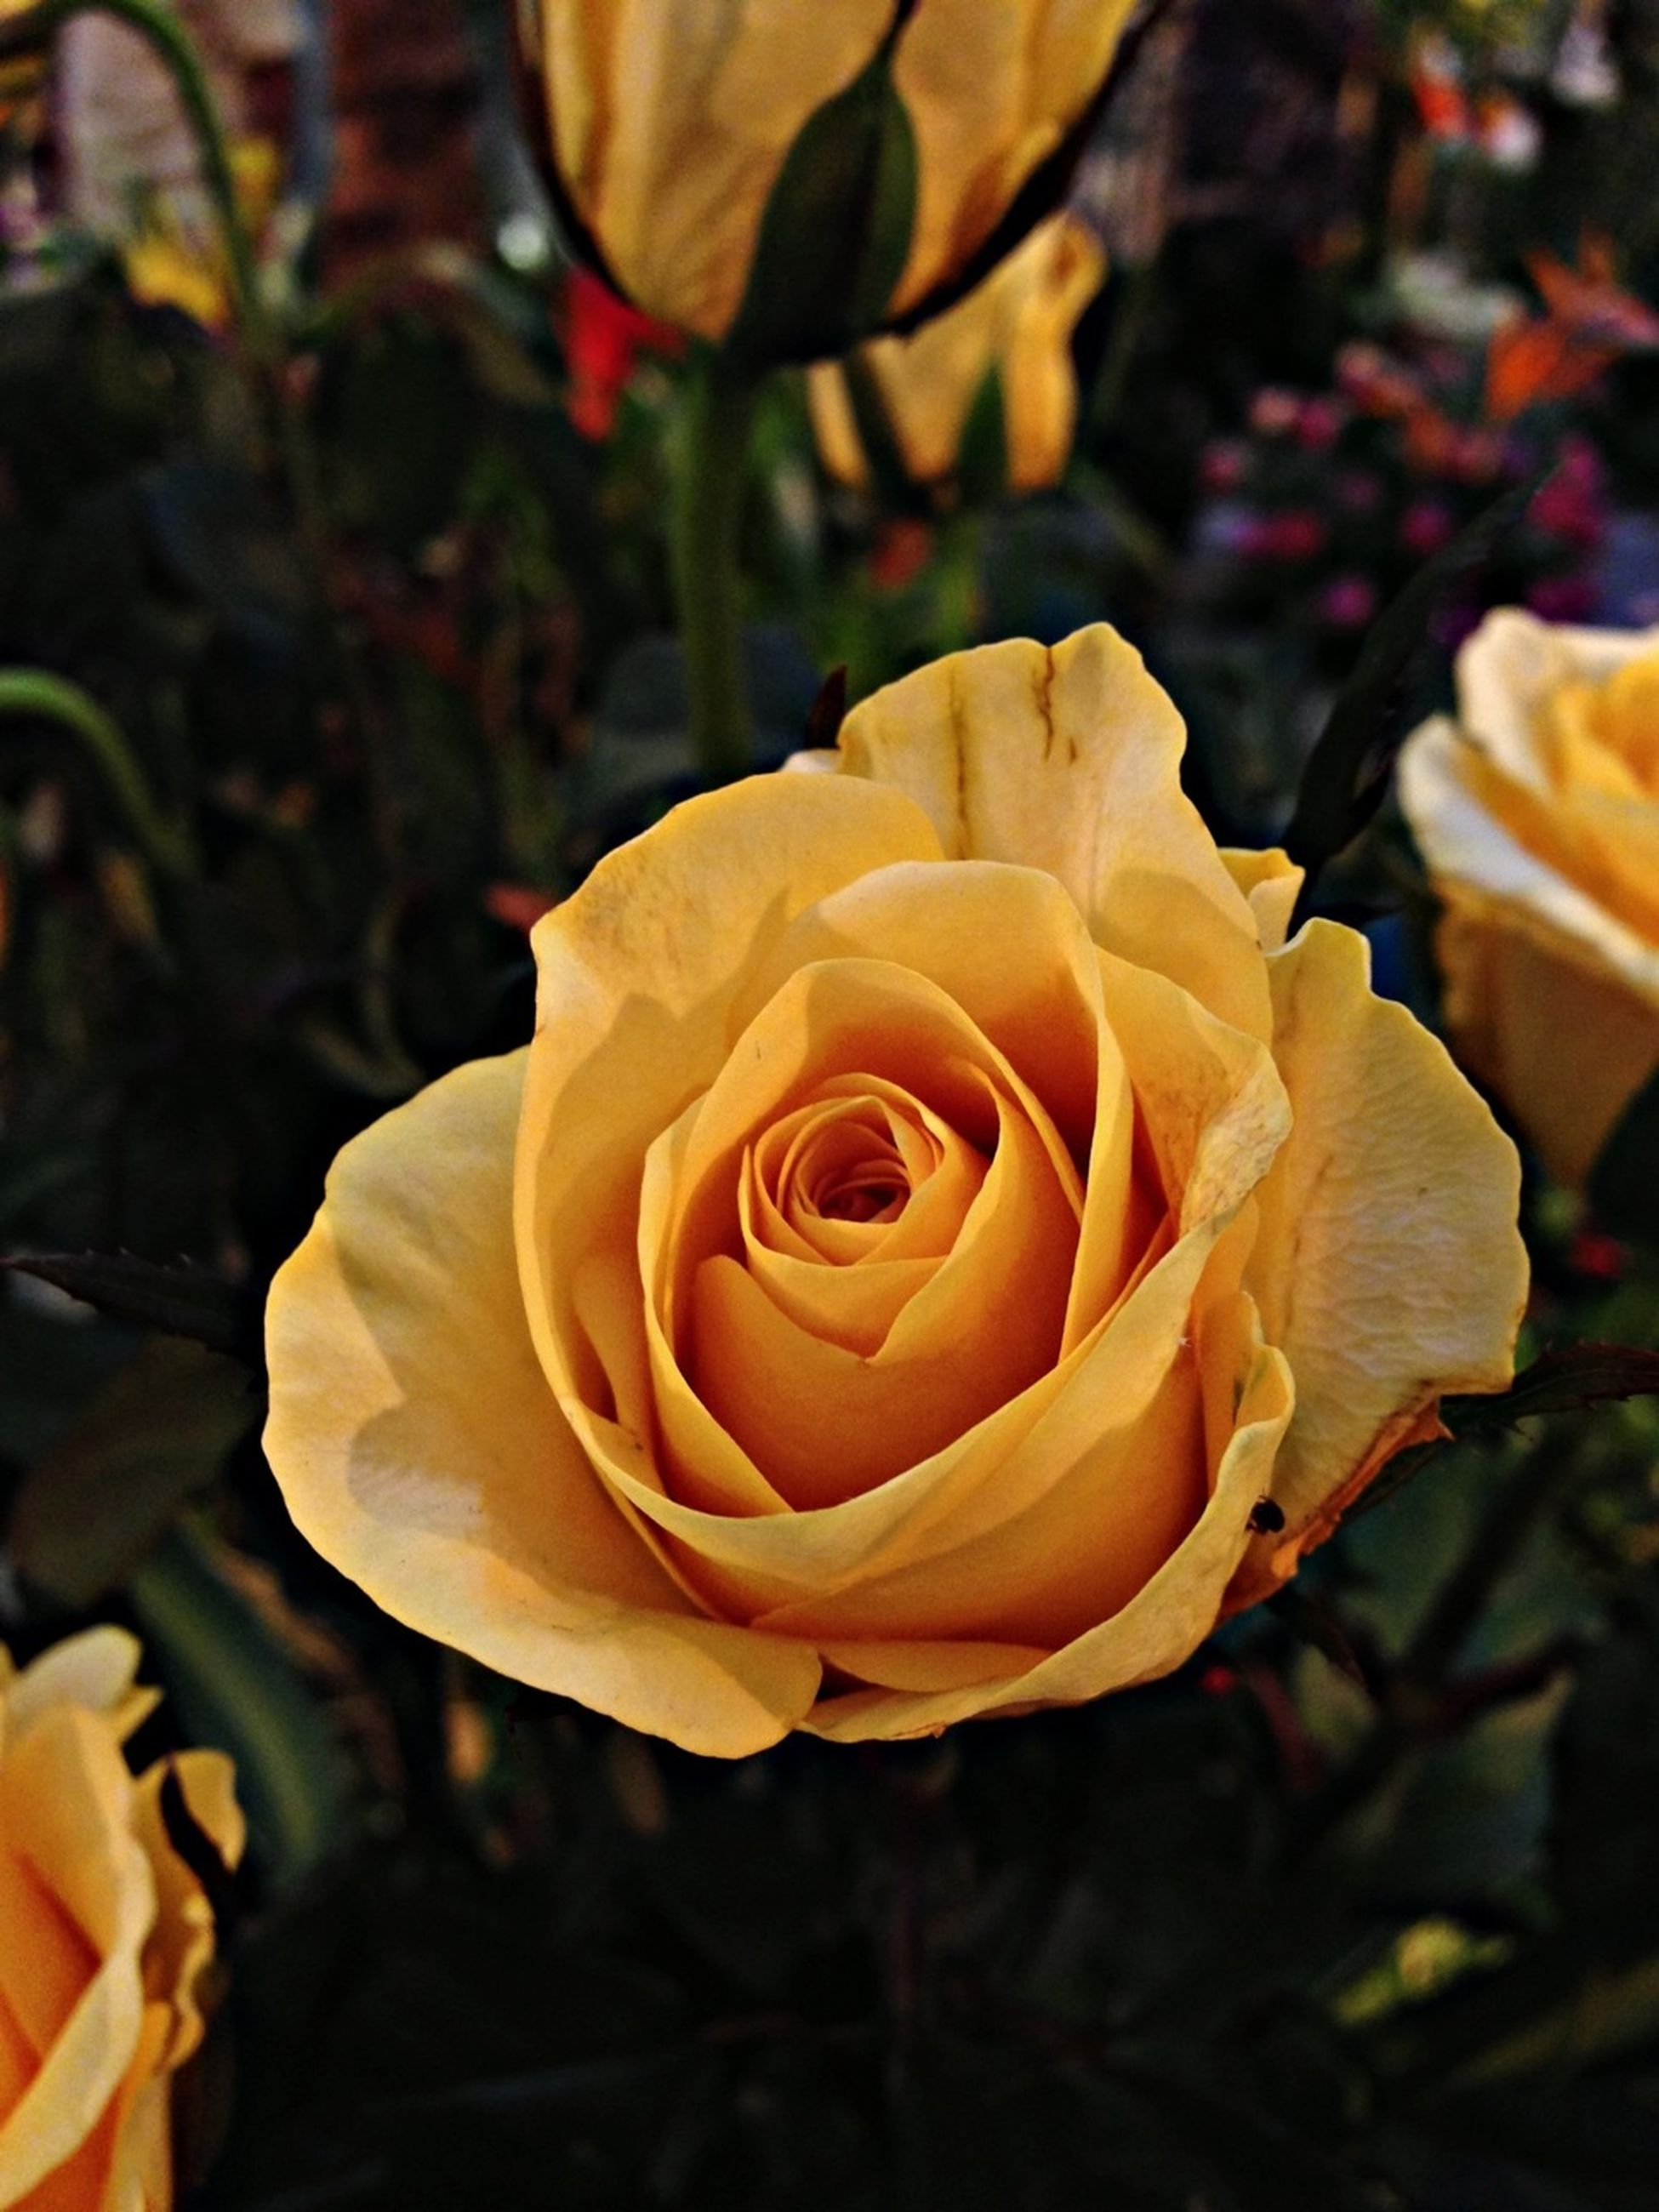 petal, flower, flower head, rose - flower, fragility, freshness, close-up, beauty in nature, focus on foreground, yellow, rose, single flower, growth, blooming, nature, single rose, in bloom, plant, orange color, blossom